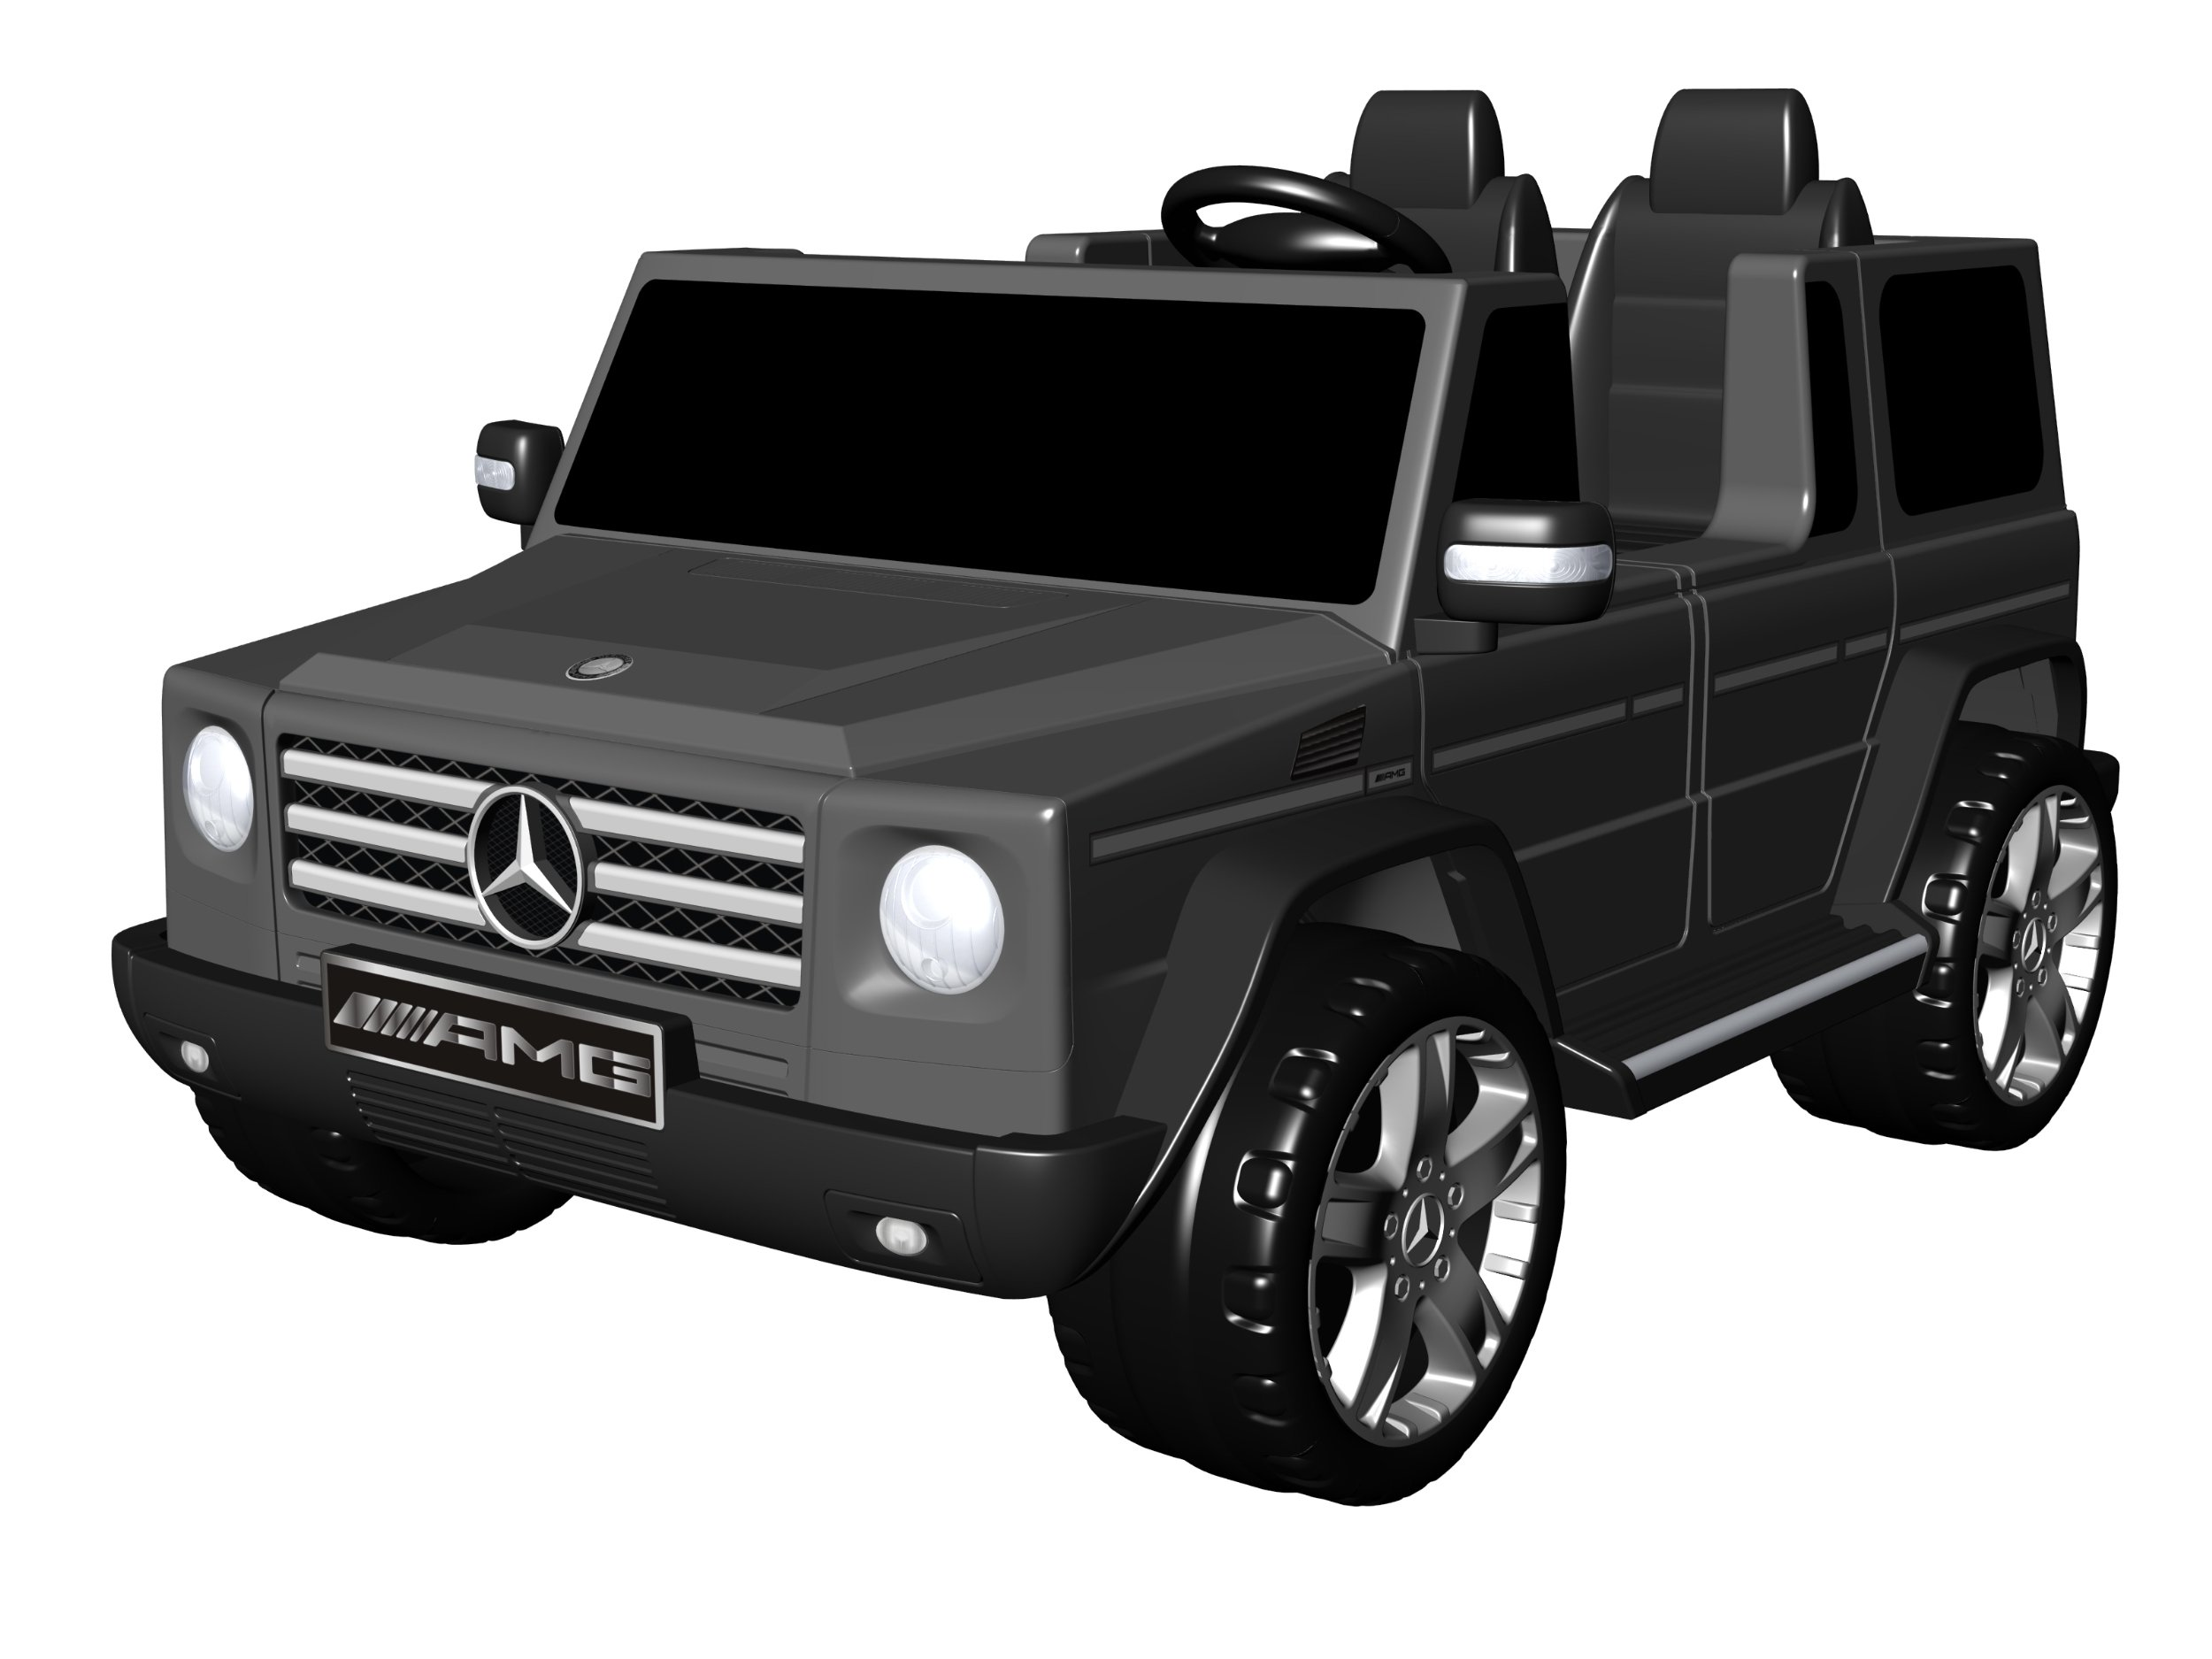 National Products 12V Black Mercedes Benz G-Class Battery Operated Ride-on by National Products